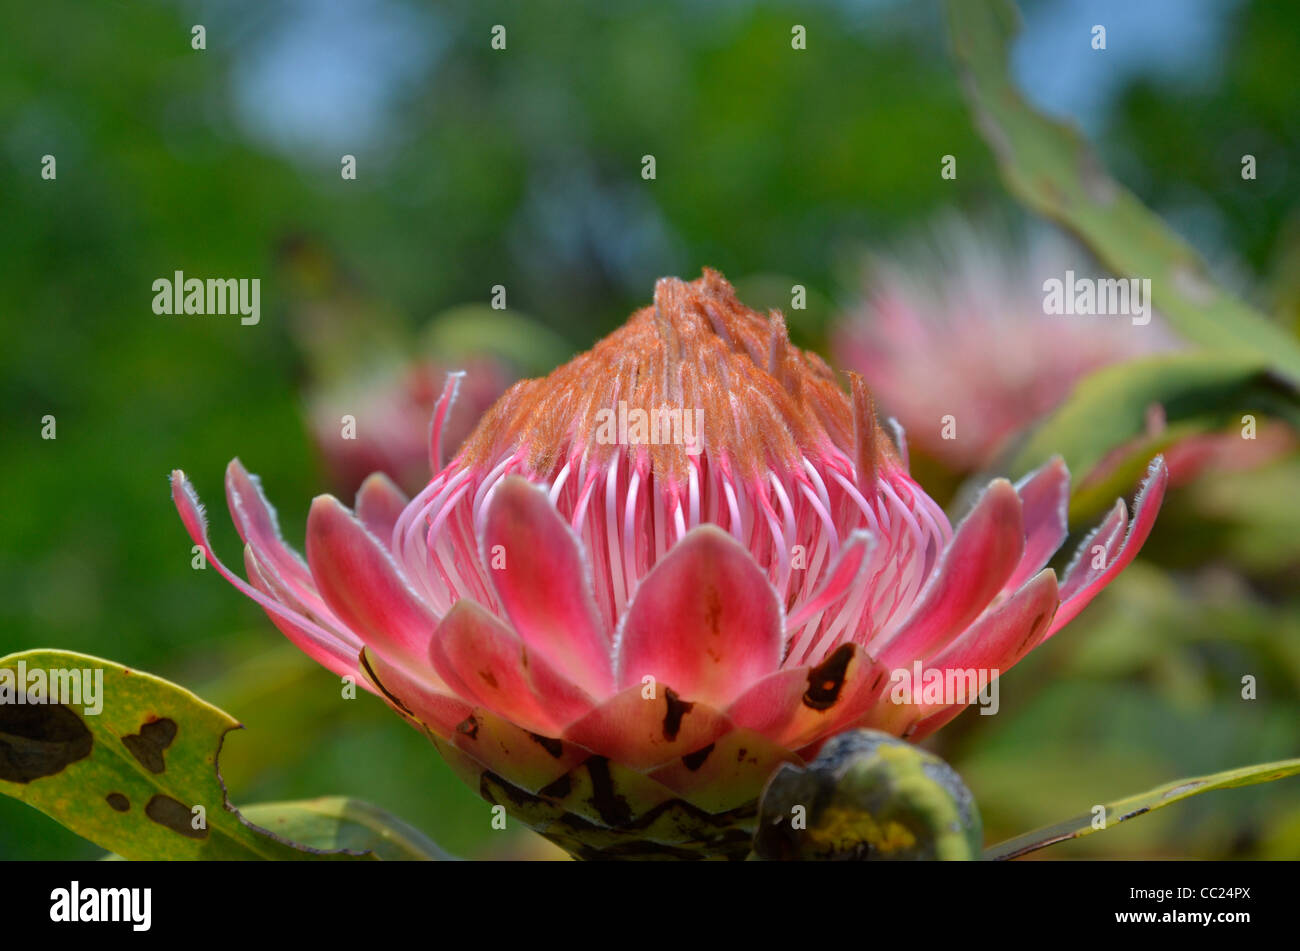 Blyderiver Protea blooming above the canyong on the edge of the Mpumalanga/Limpopo escarpment - Stock Image